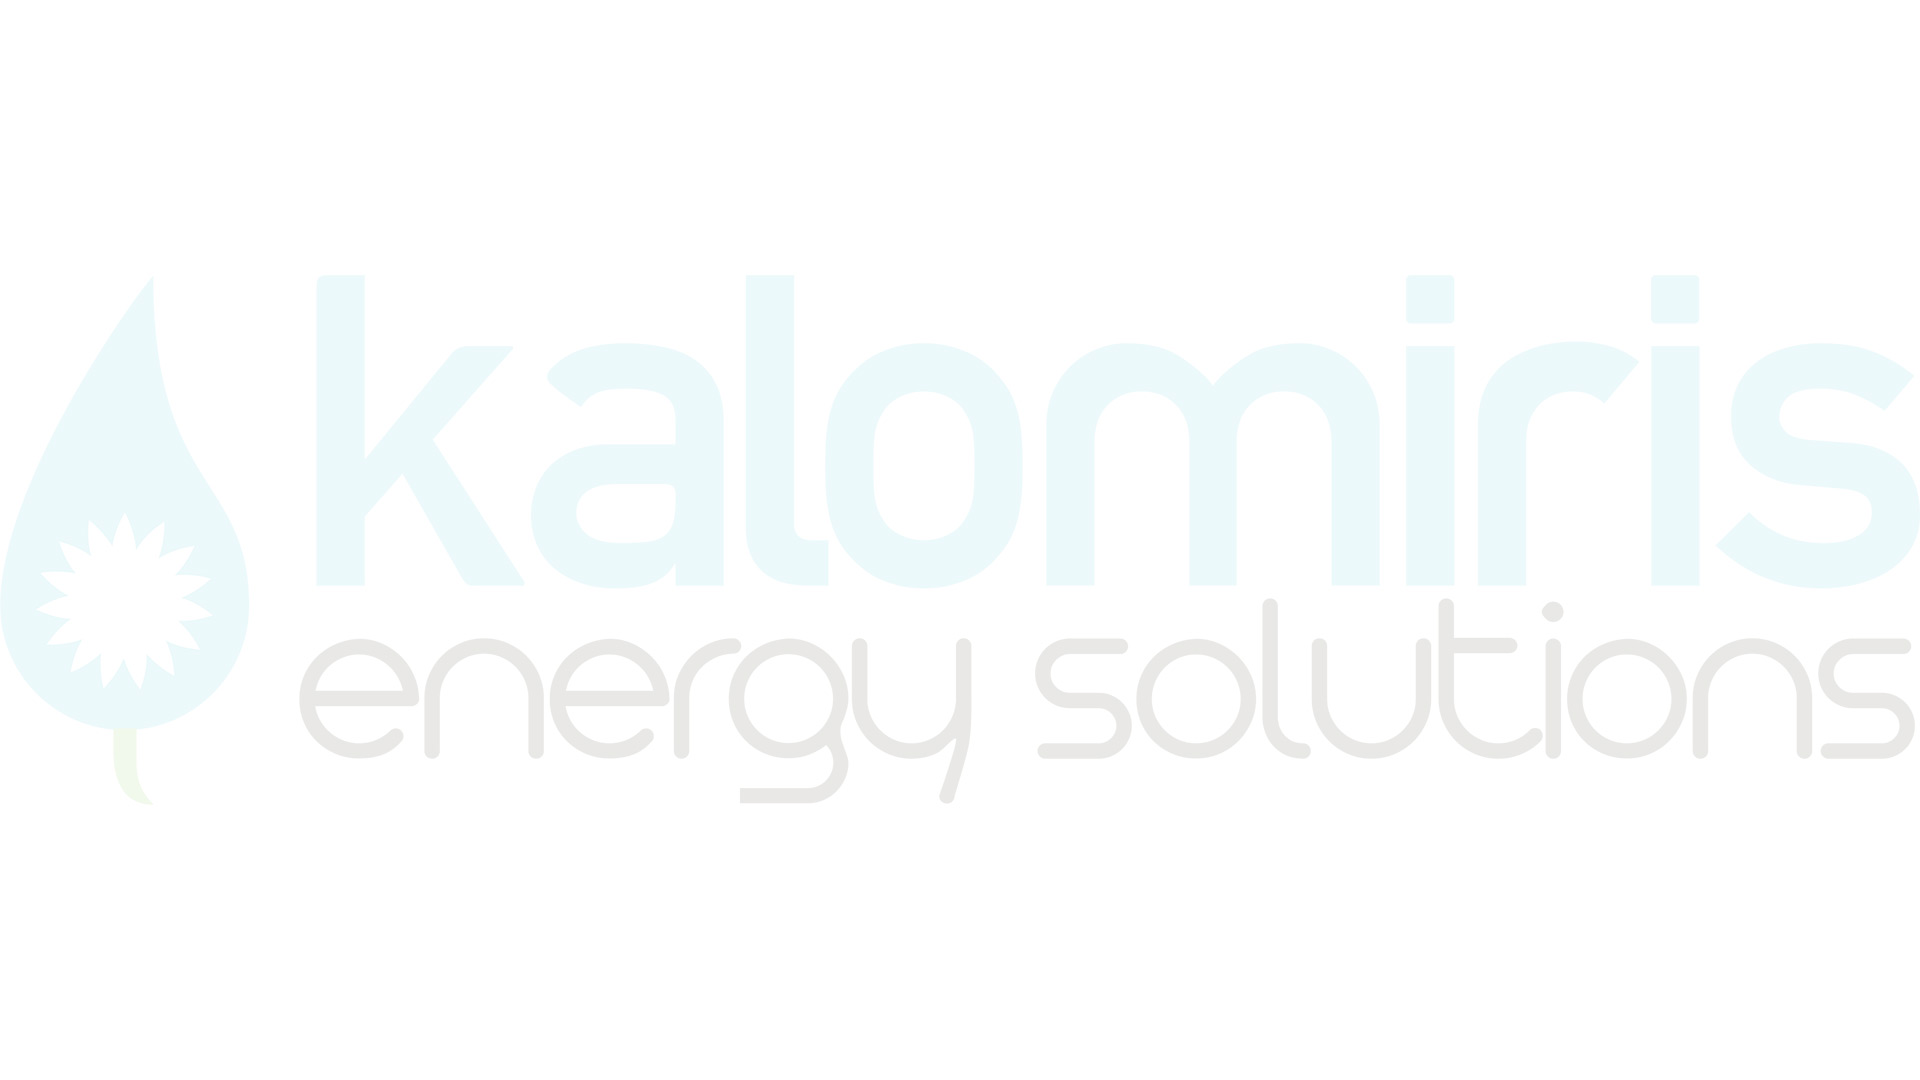 Ceiling Fan CASAFAN ECO NEO II 103 BA Cherry / Walnnut 40.5 (103cm)